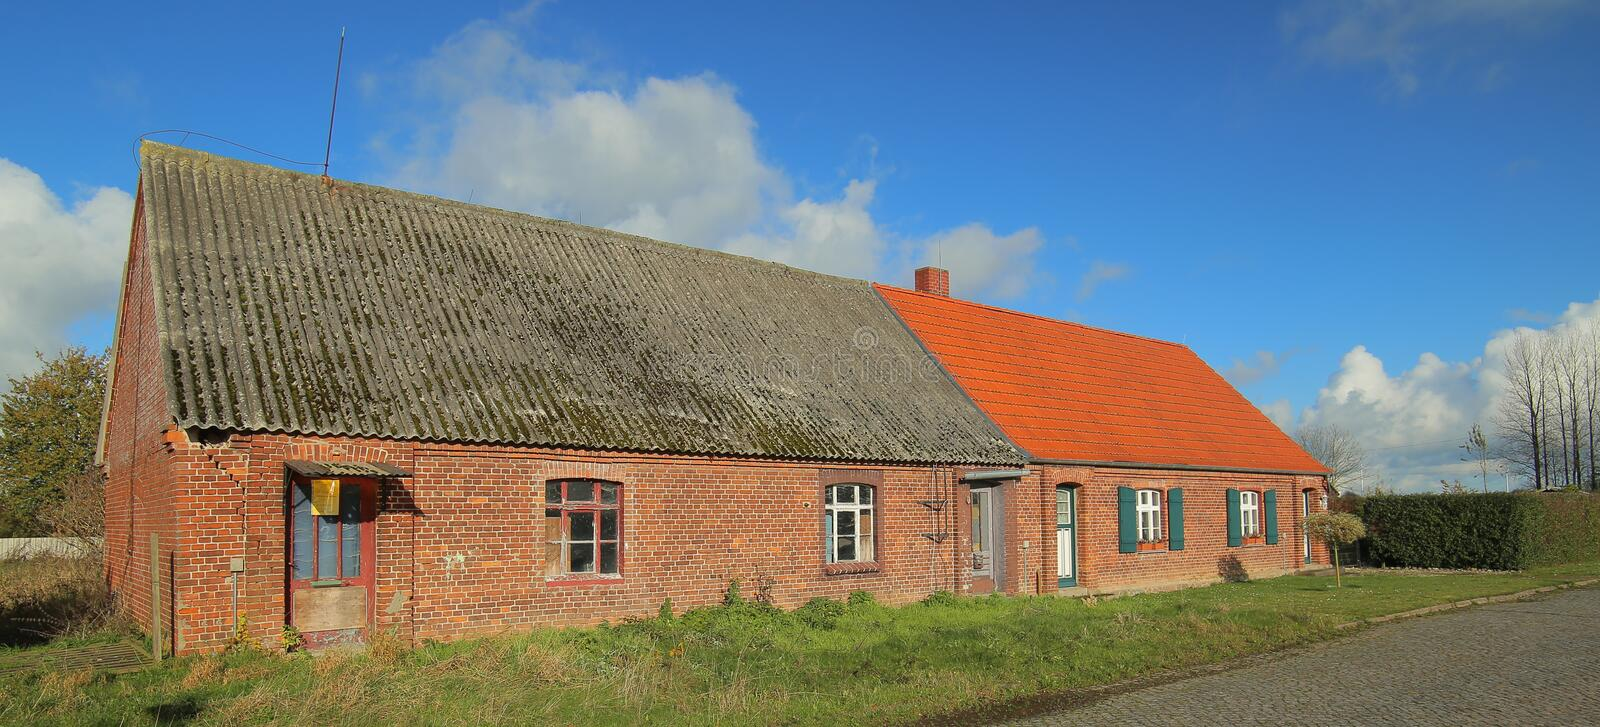 Download Small Cottage Houses Listed As Monument In The Town Of Poggendorf, Mecklenburg-Vorpommern, Germany Stock Image - Image of gray, duplex: 103816249